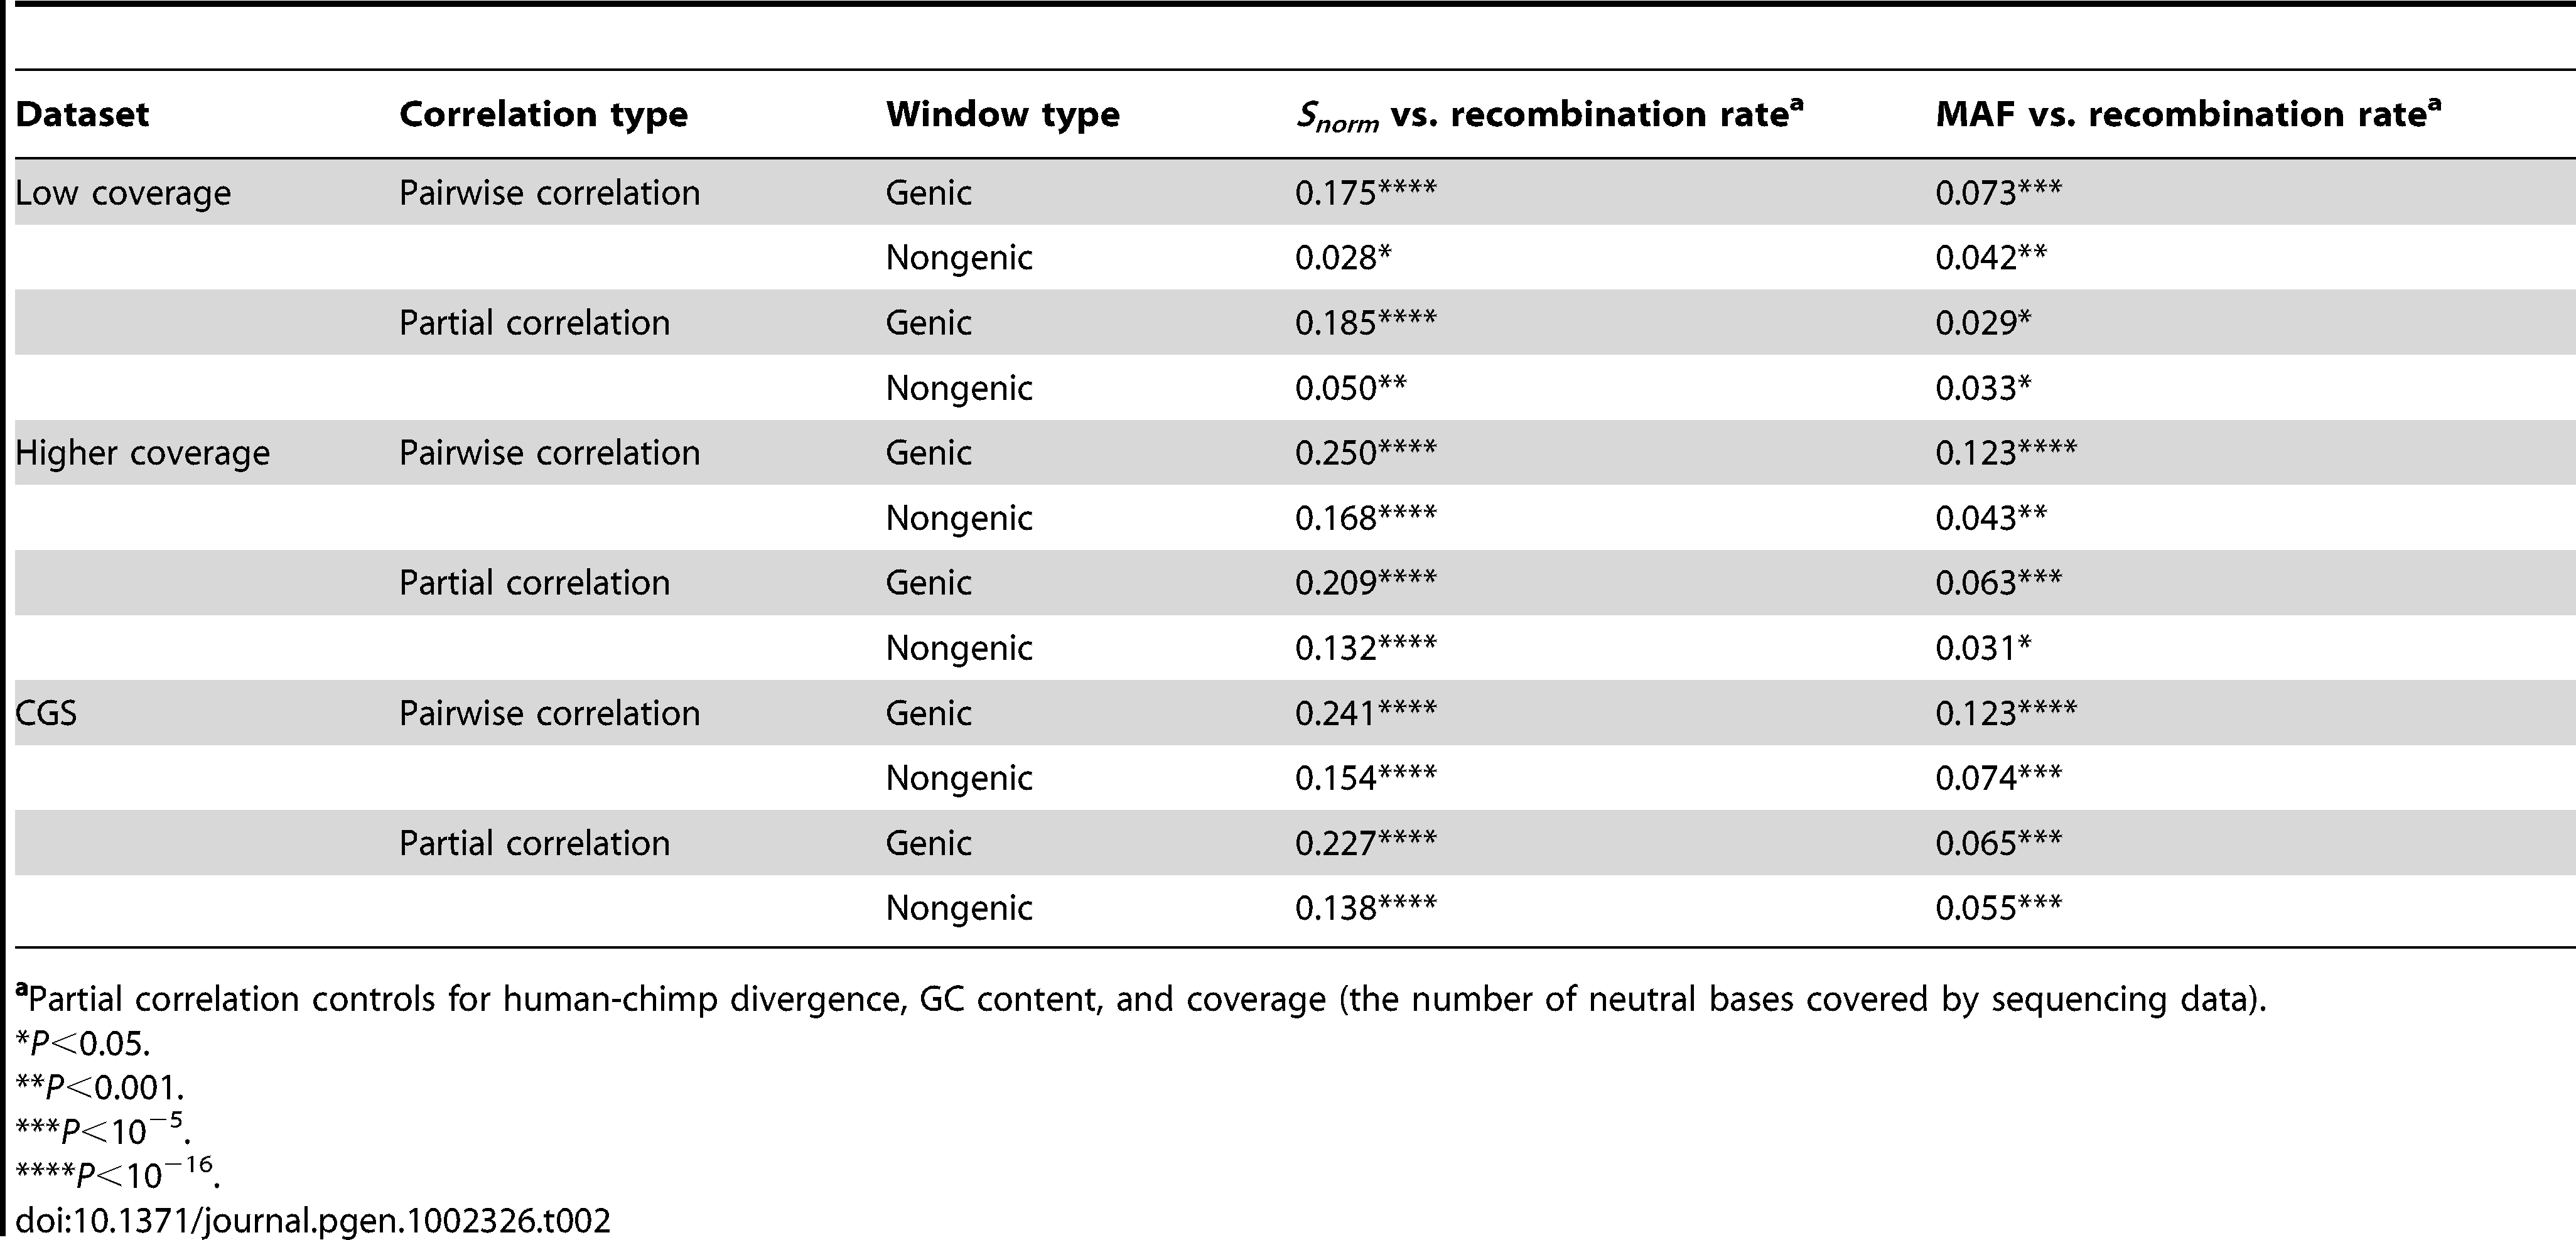 Summary of correlation coefficients (Spearman's ) for the three datasets divided into genic and non-genic windows.